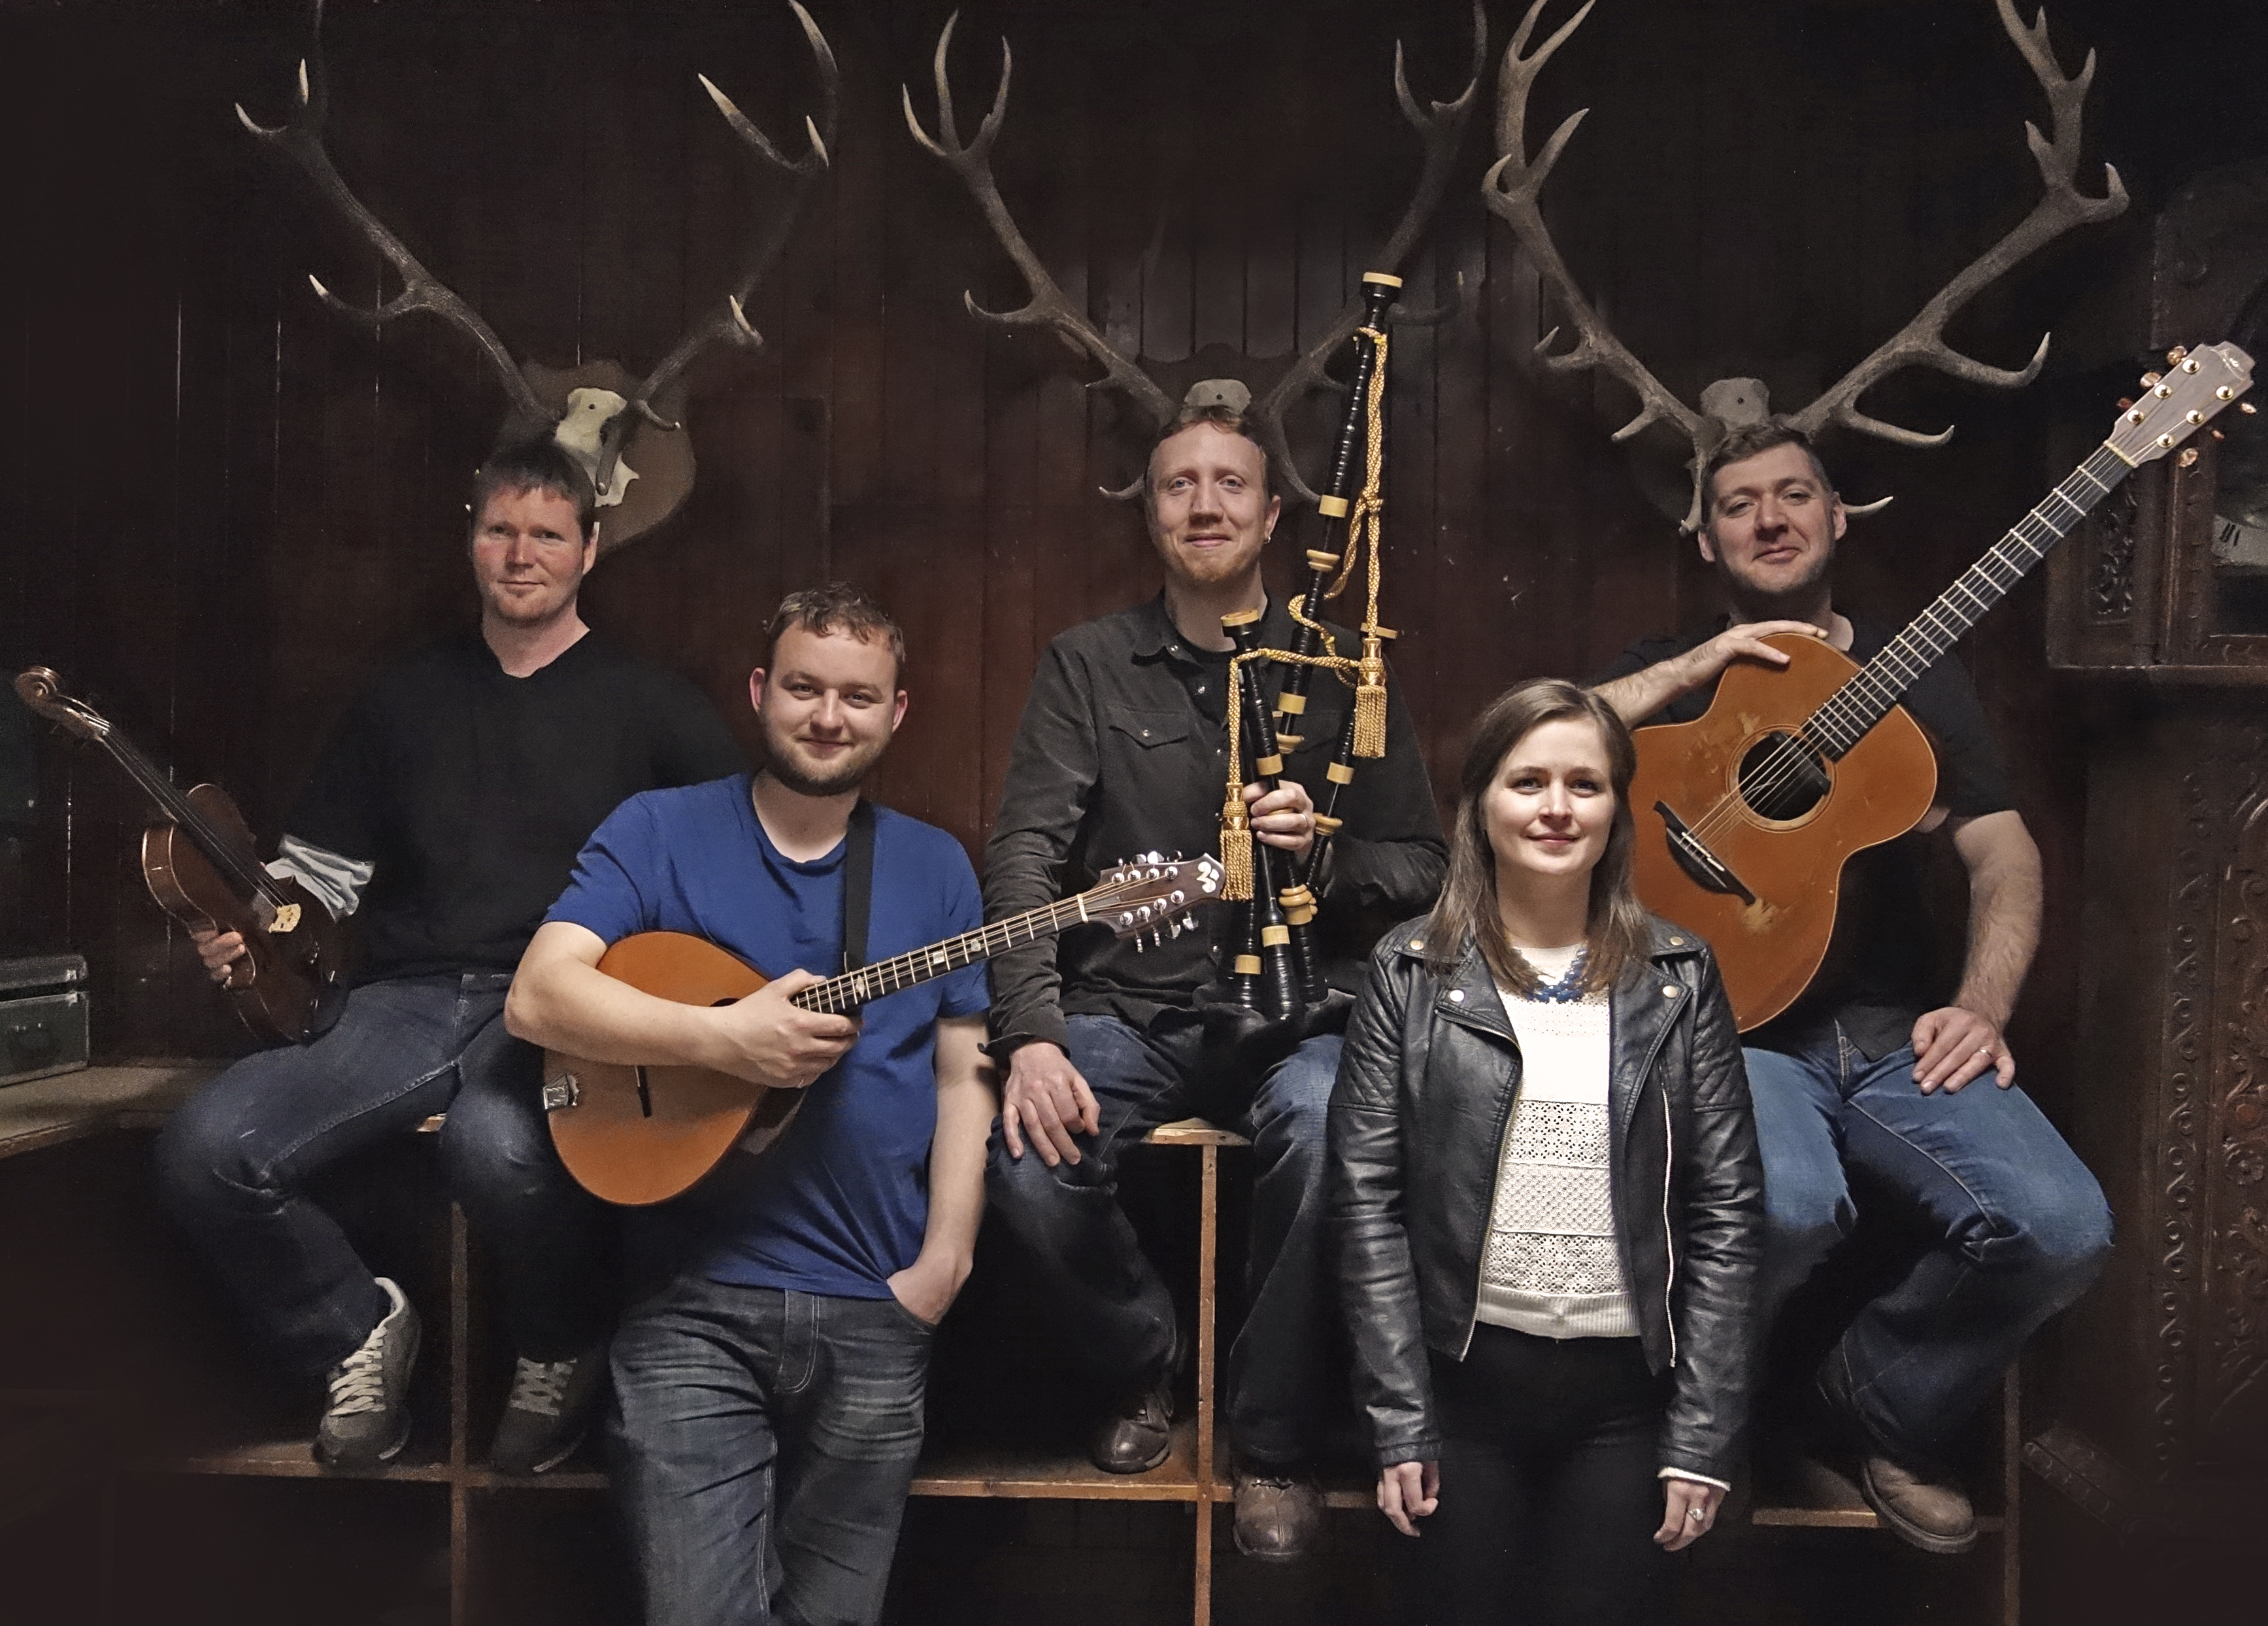 Dàimh brings sounds of Scottish Highlands and Islands to The